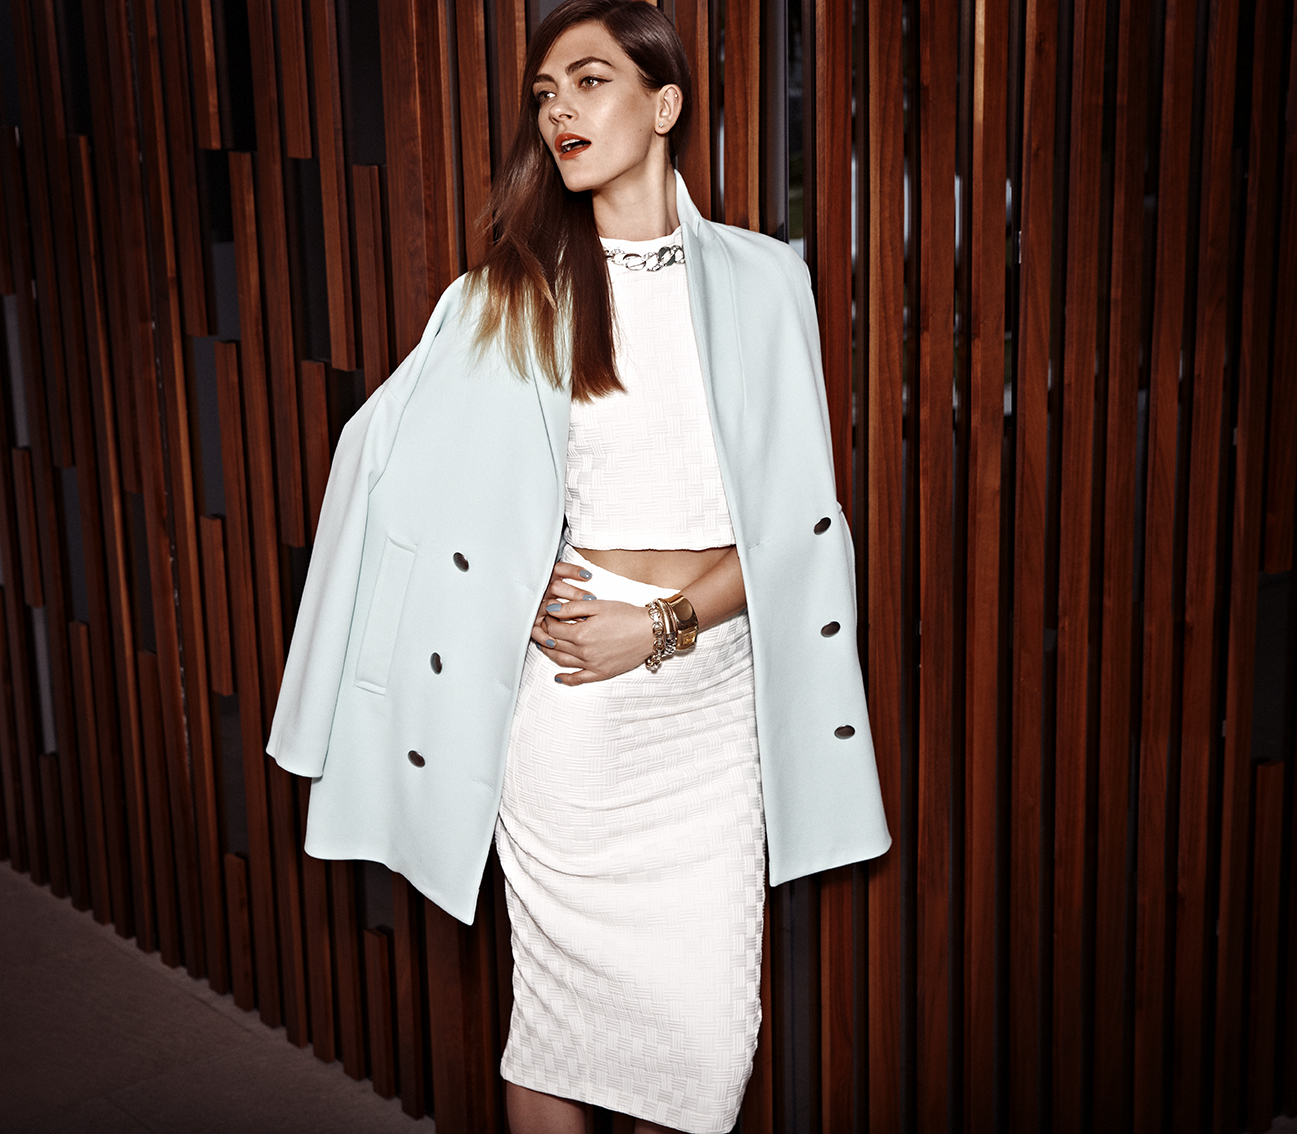 style_and_living_shot_20_1716.jpg